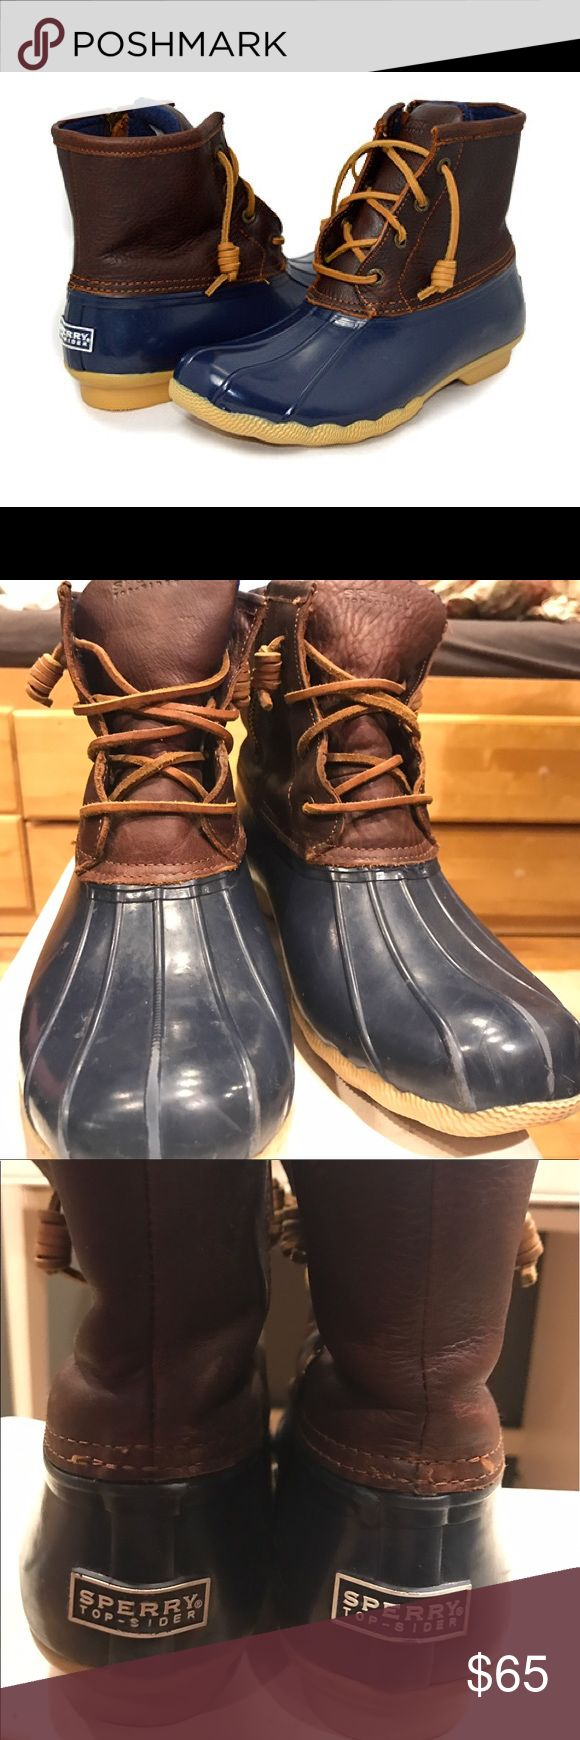 Sperry women's navy duck boots size 10 Lightly used, but broken in. Warm, water resistant , and comfy. Clean and no scent whatsoever Sperry Top-Sider Shoes Winter & Rain Boots